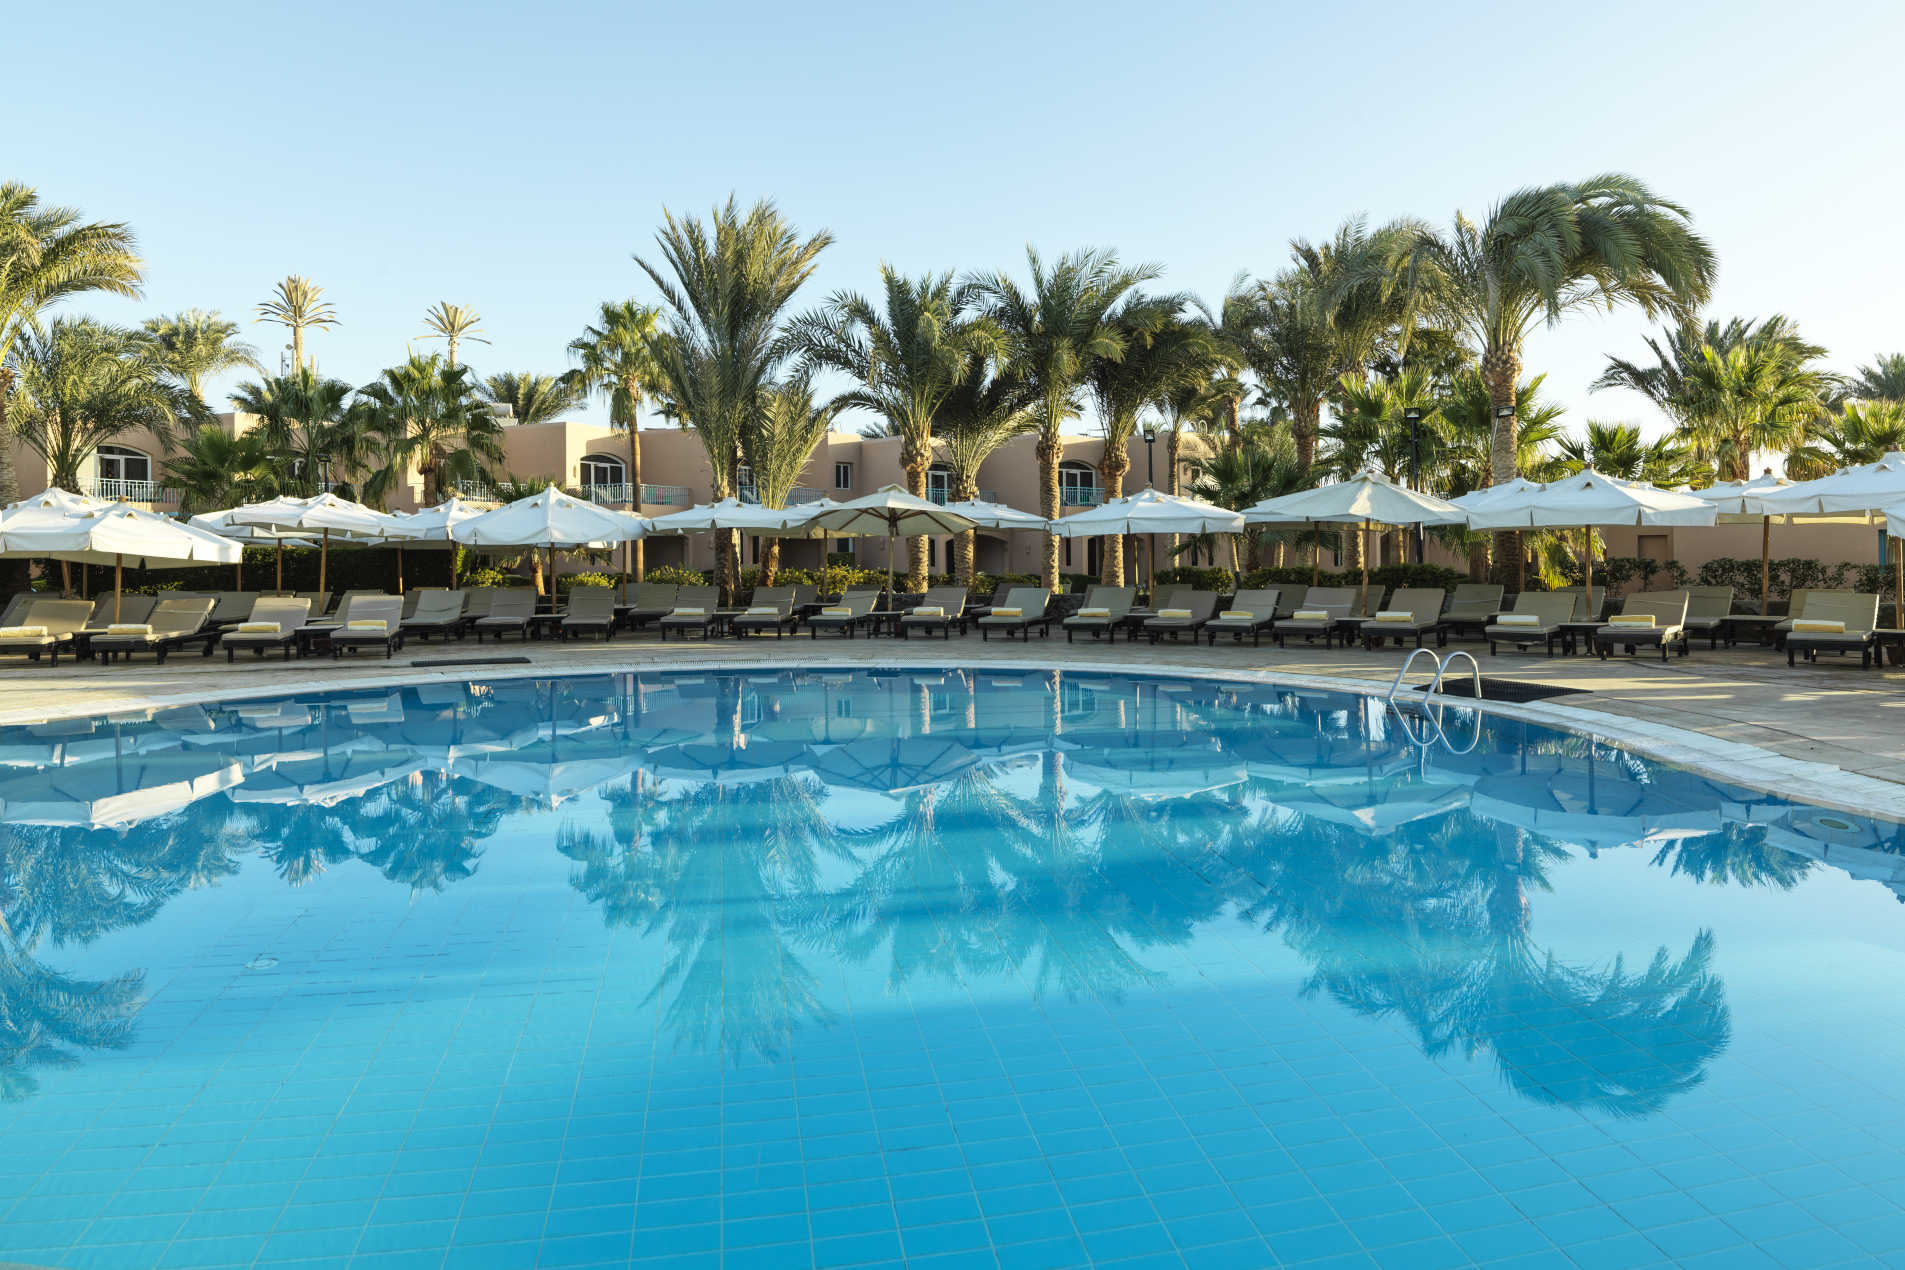 Swimming Pool of Labranda Club Paradisio Hotel in El Gouna surrounded with laid back sunbeds and umbrellas